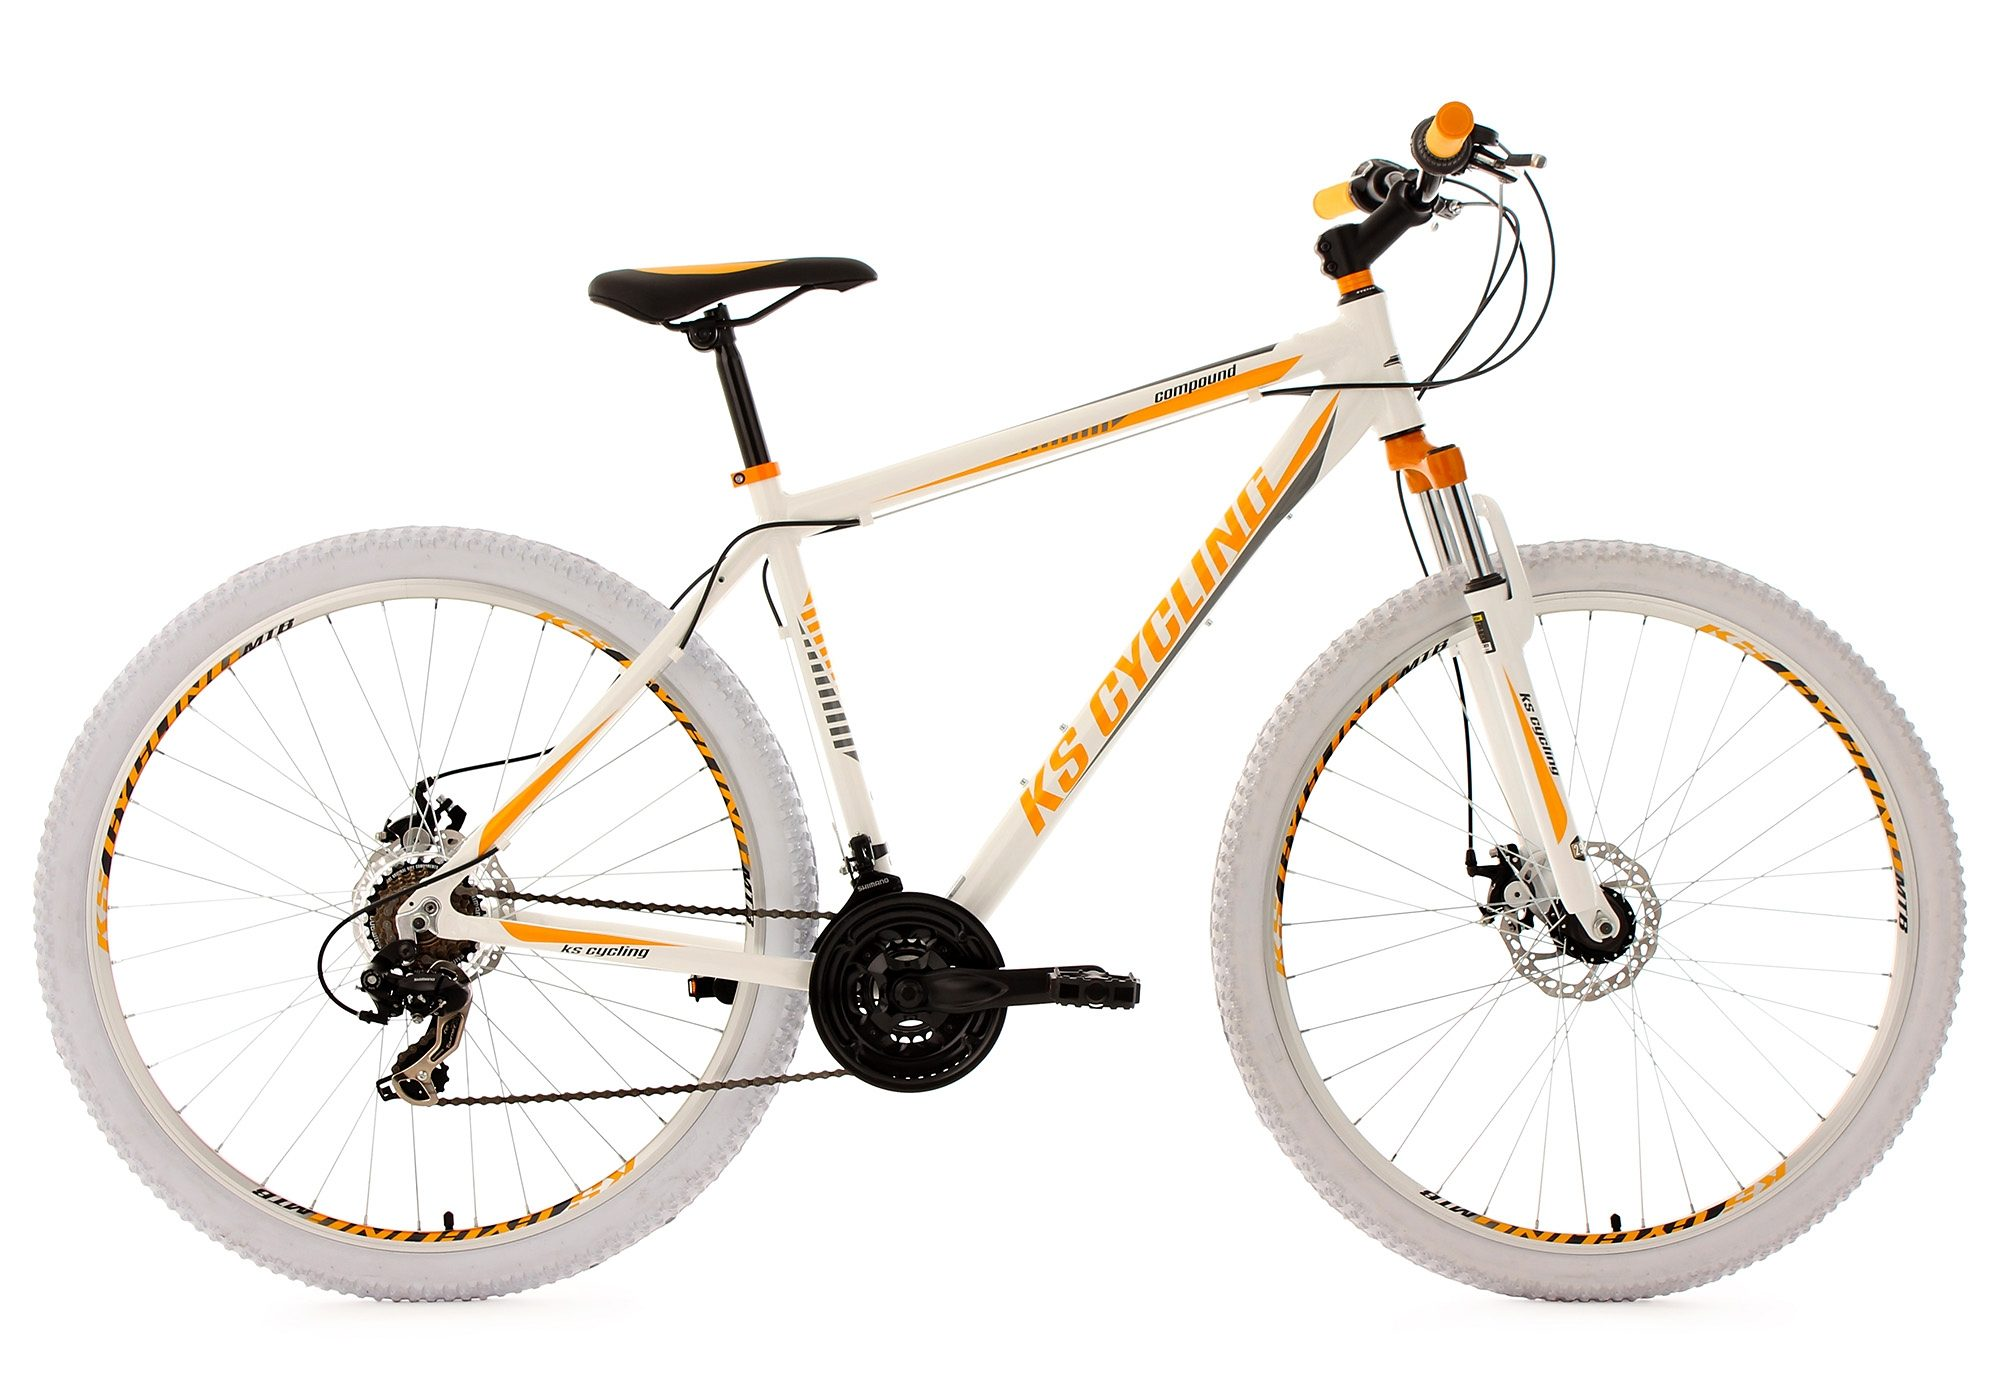 KS Cycling Hardtail-Mountainbike, 29 Zoll, 21 Gang-Kettenschaltung, weiß, »Compound«